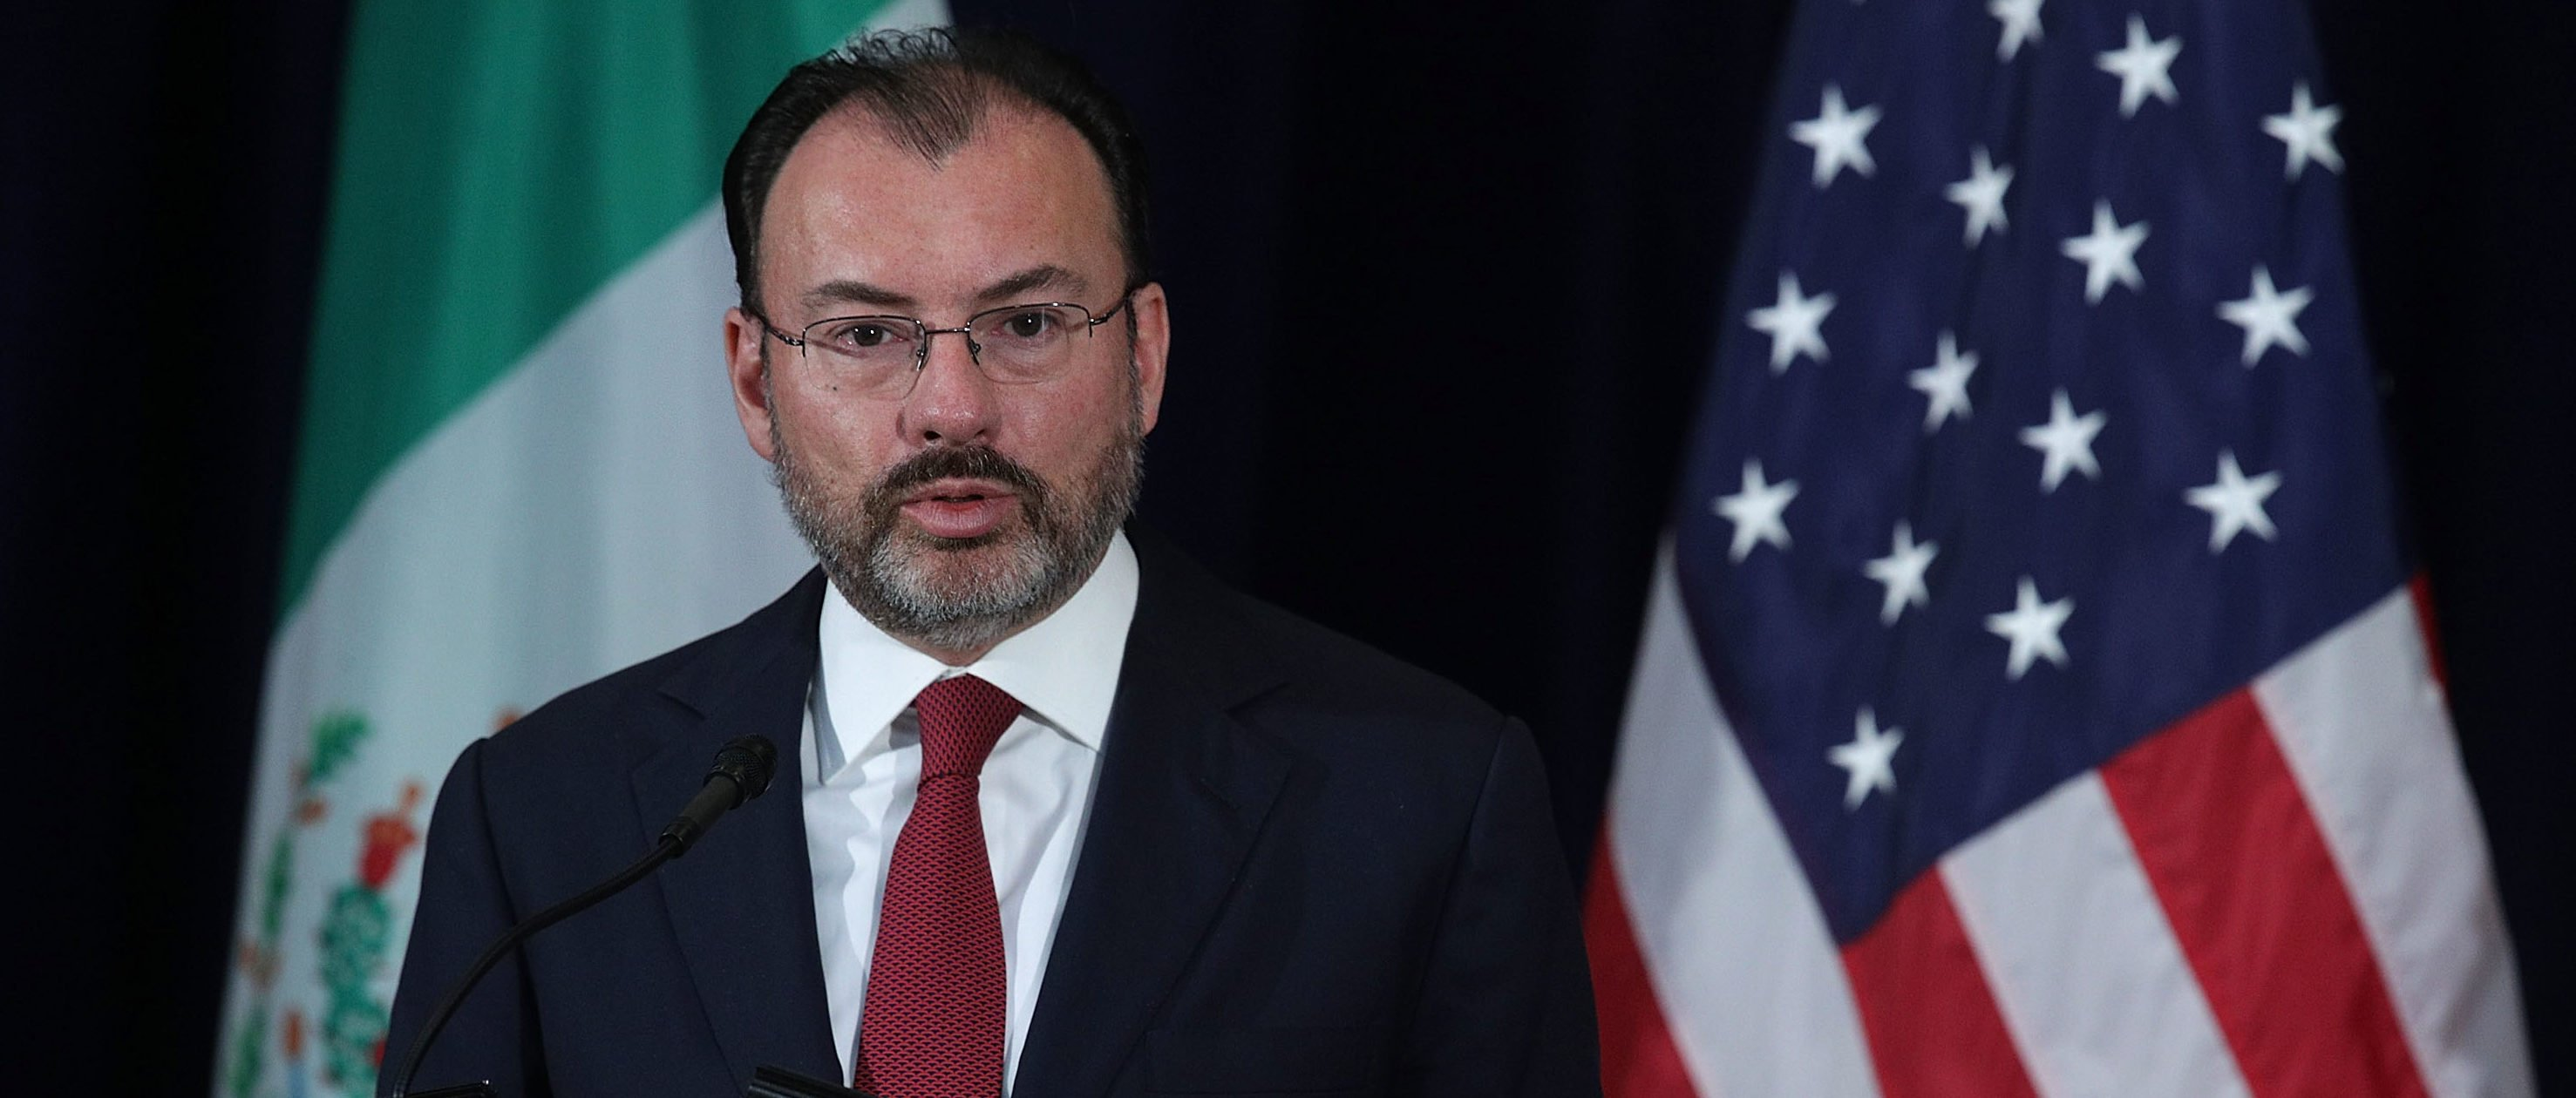 Mexican Foreign Secretary Luis Videgaray participates in a media availability May 18, 2017 at the State Department in Washington, DC. The State Department hosted a Strategic Dialogue on Disrupting Transnational Criminal Organizations. (Photo by Alex Wong/Getty Images)